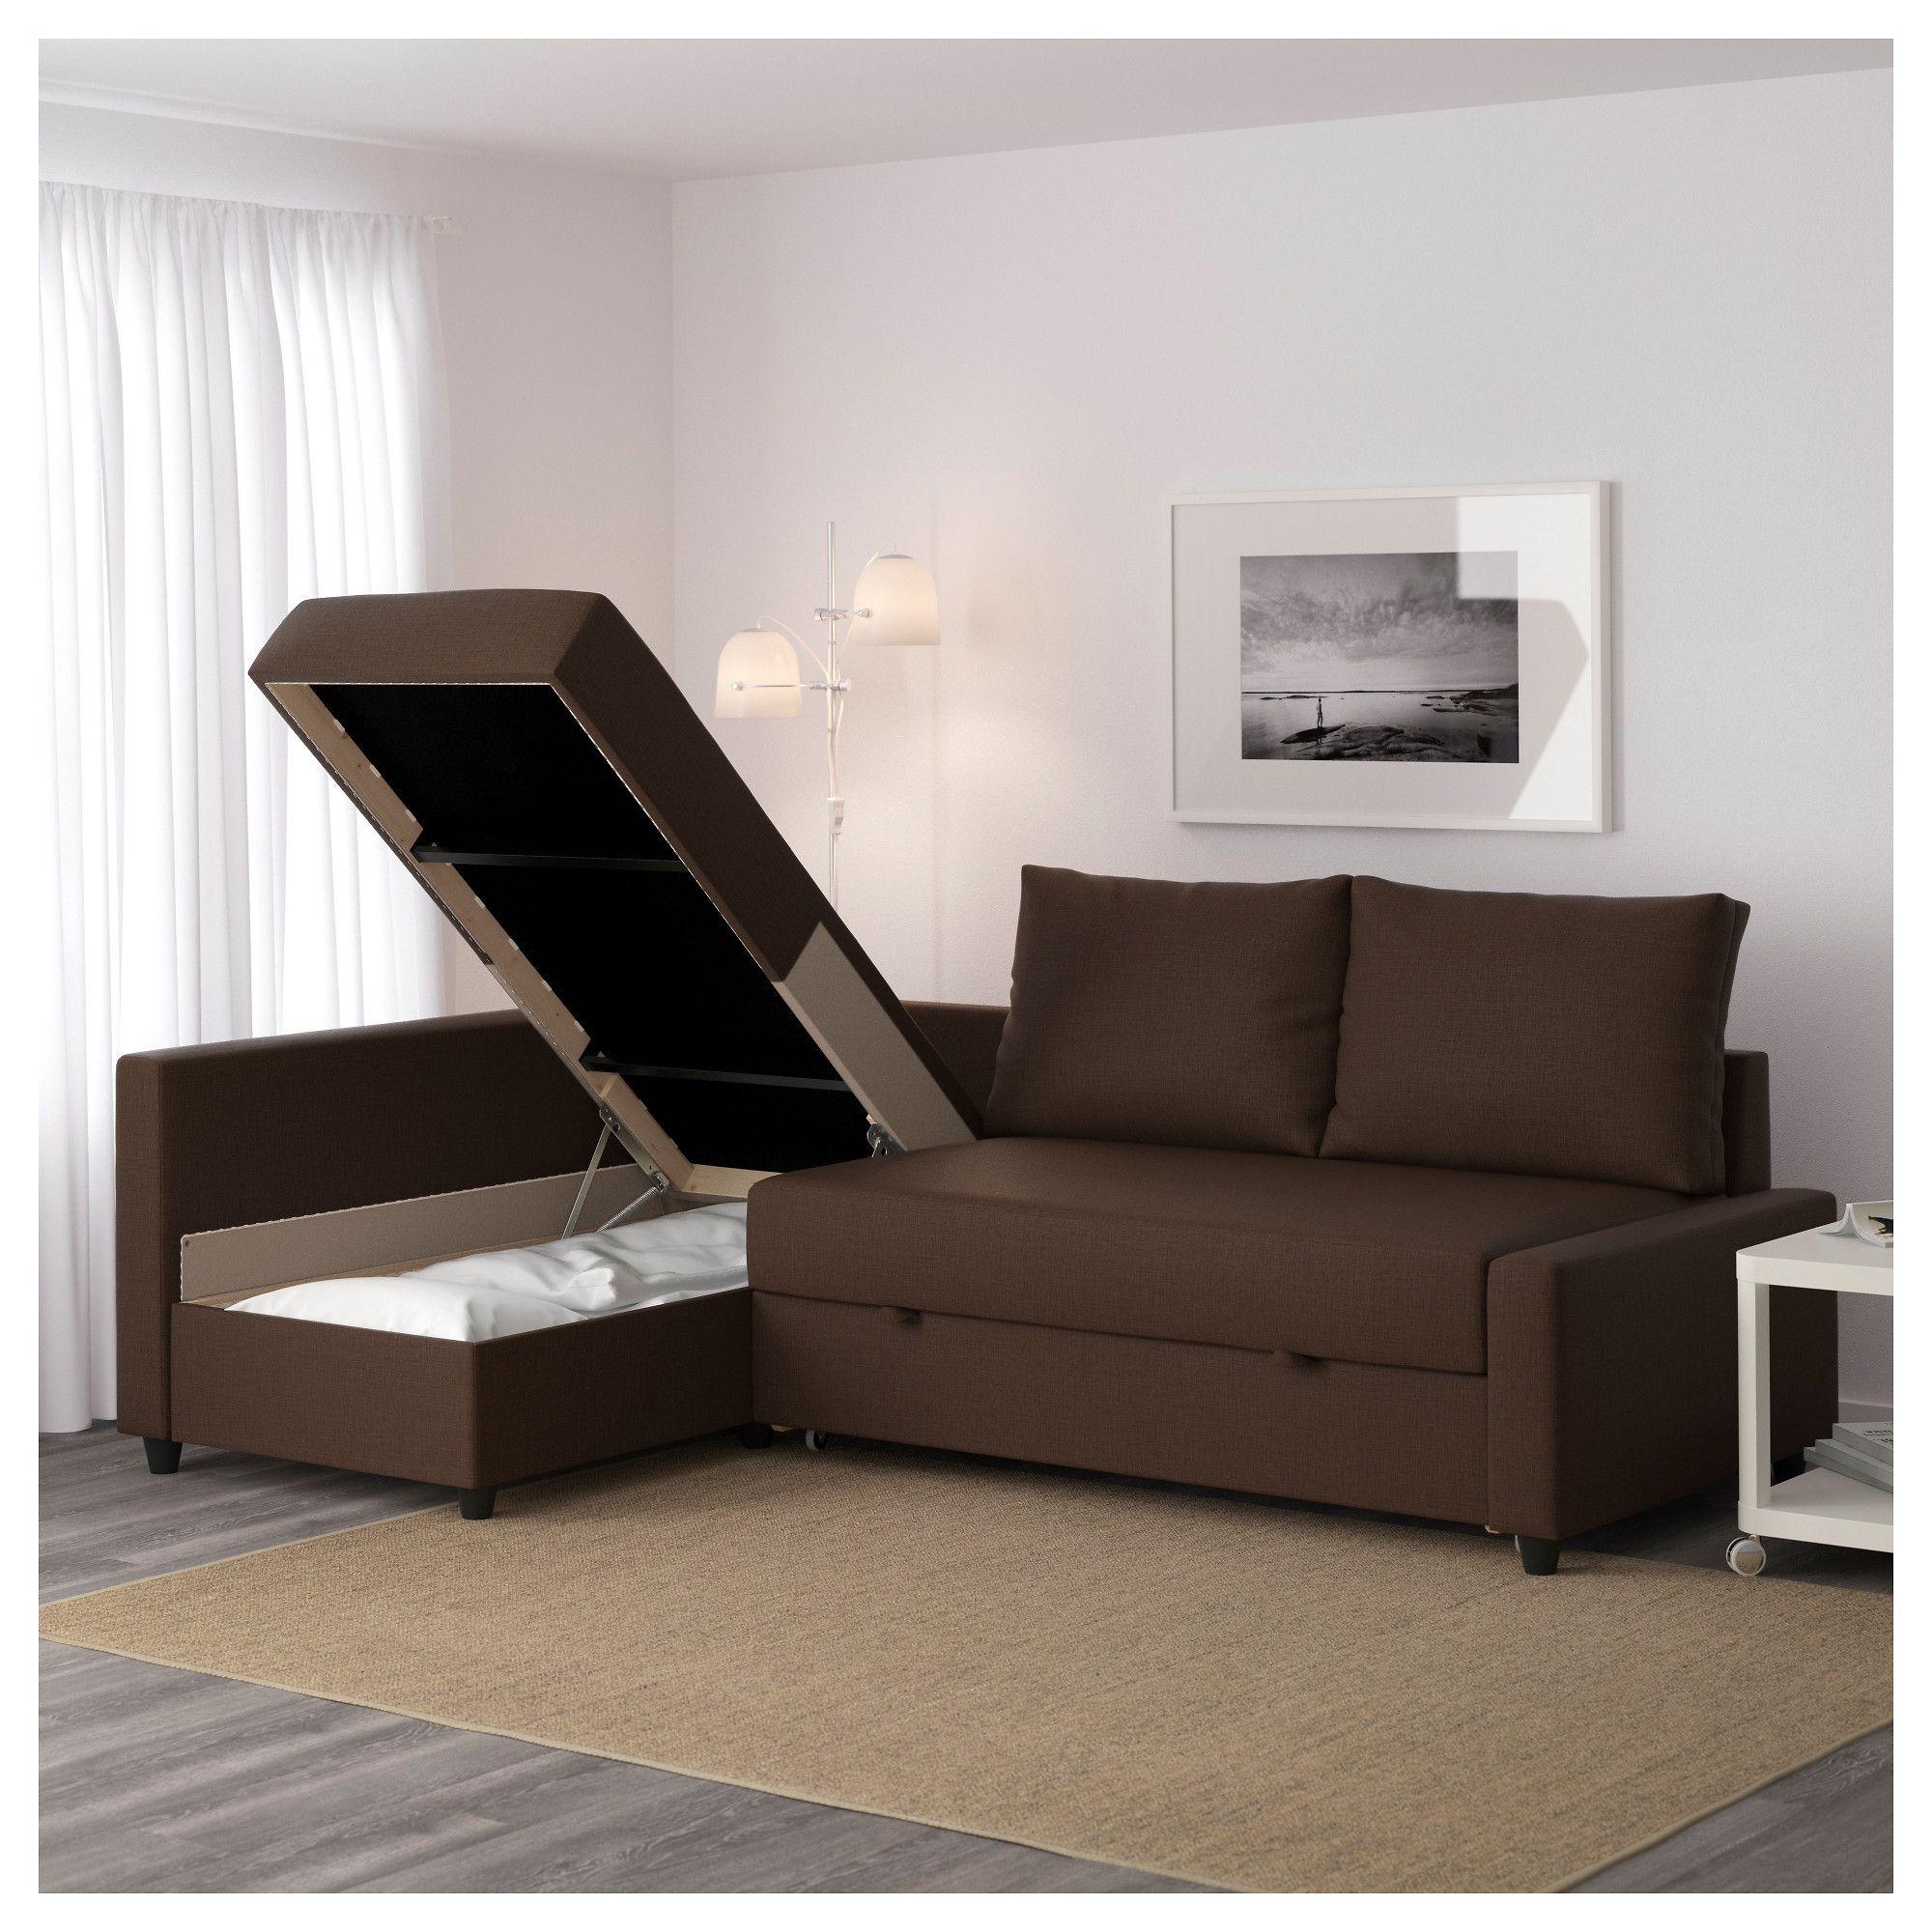 Canape Convertible Ikea 399 Euros Sofa Bed Sectional With Storage Tyres2c